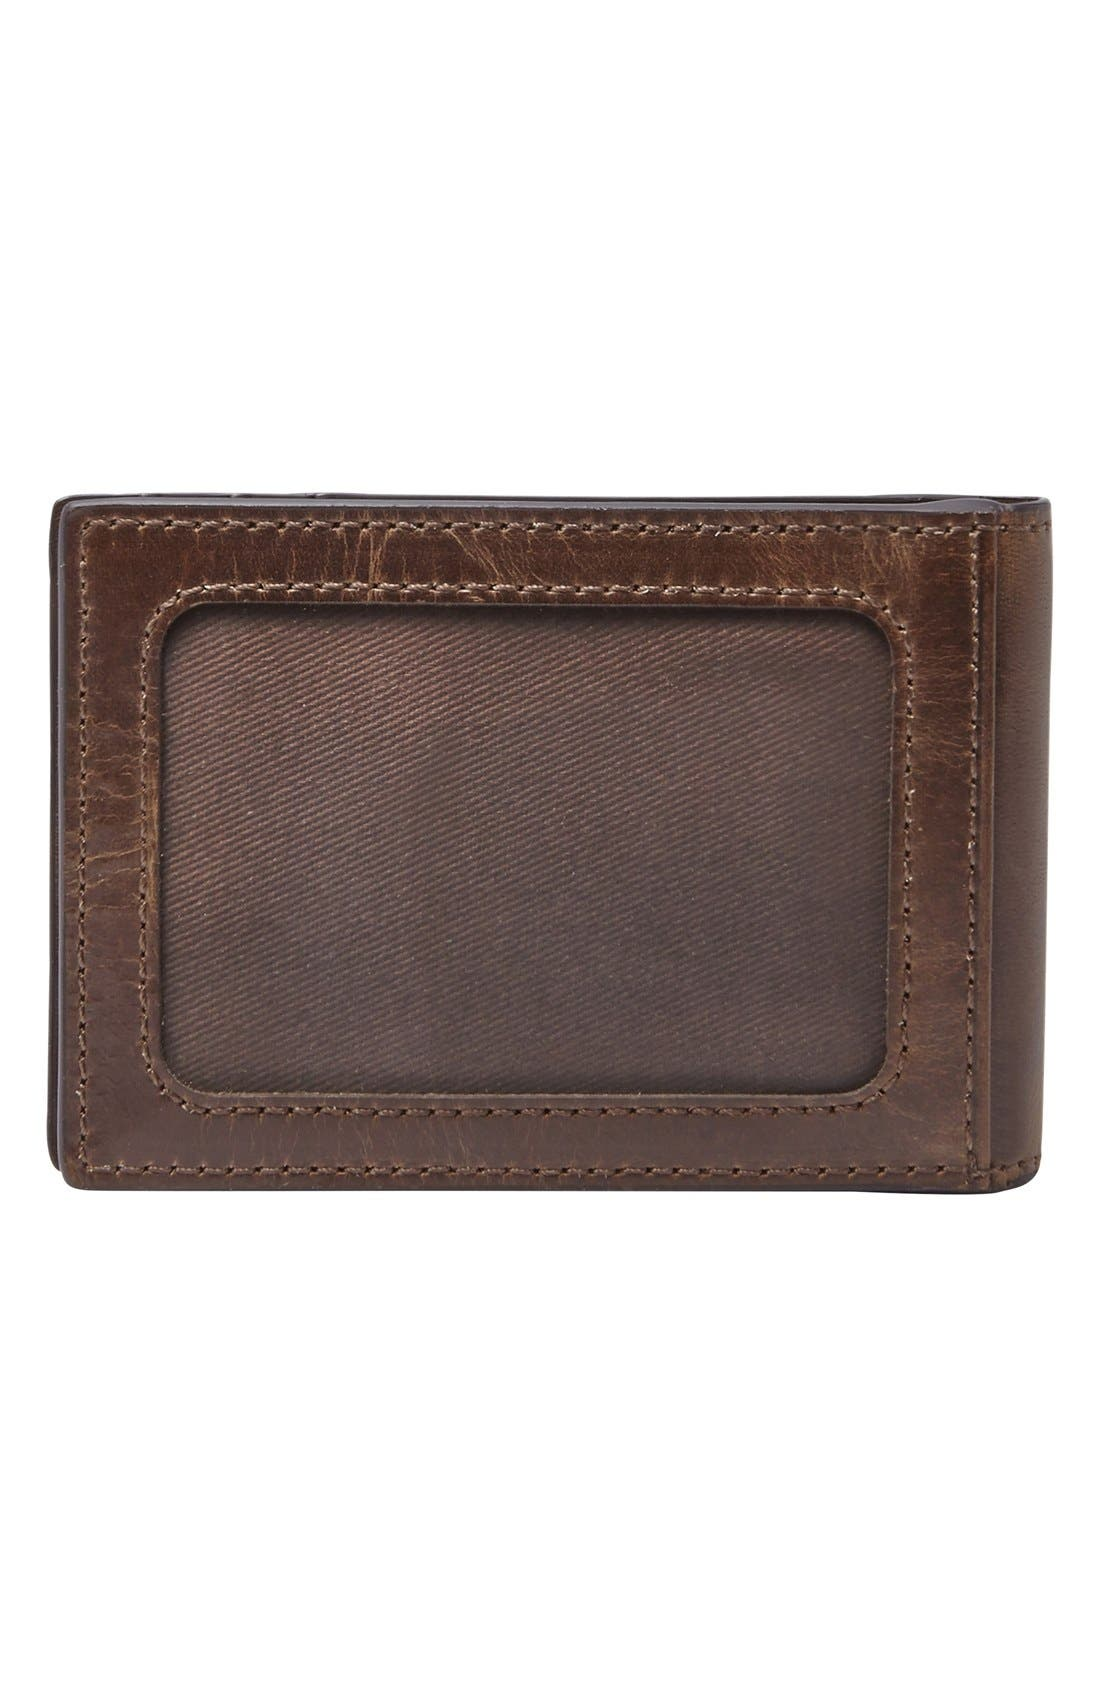 Alternate Image 3  - Fossil Derrick Leather Money Clip Bifold Wallet